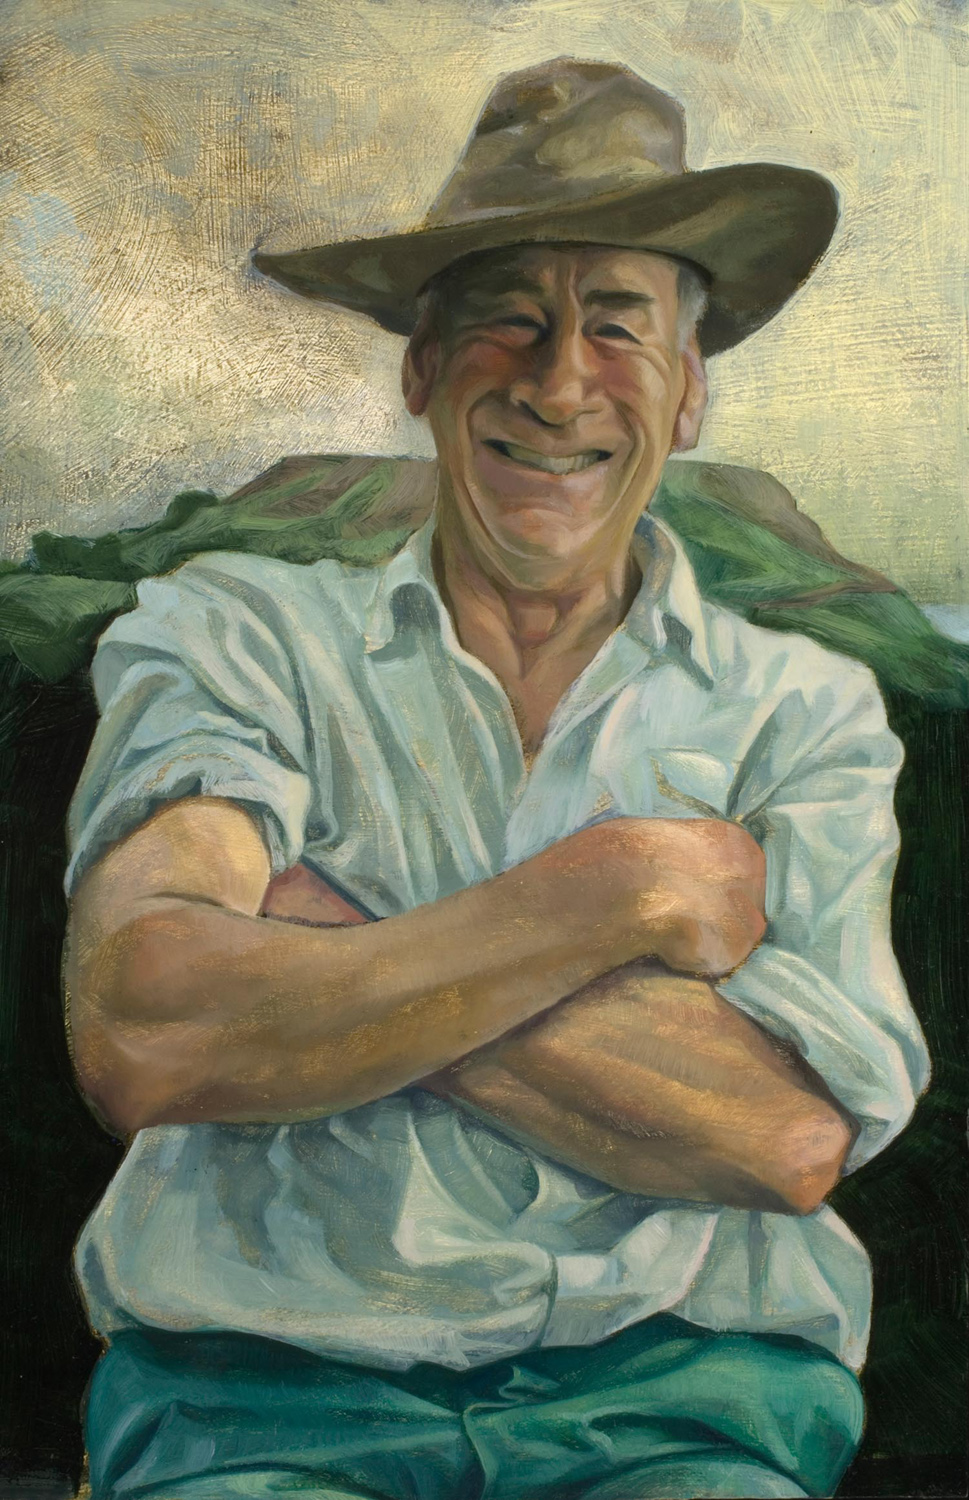 "'Robin Smith, farmer, west Dorset' oil on gesso panel 40x30cm (16""x12""). Private collection."